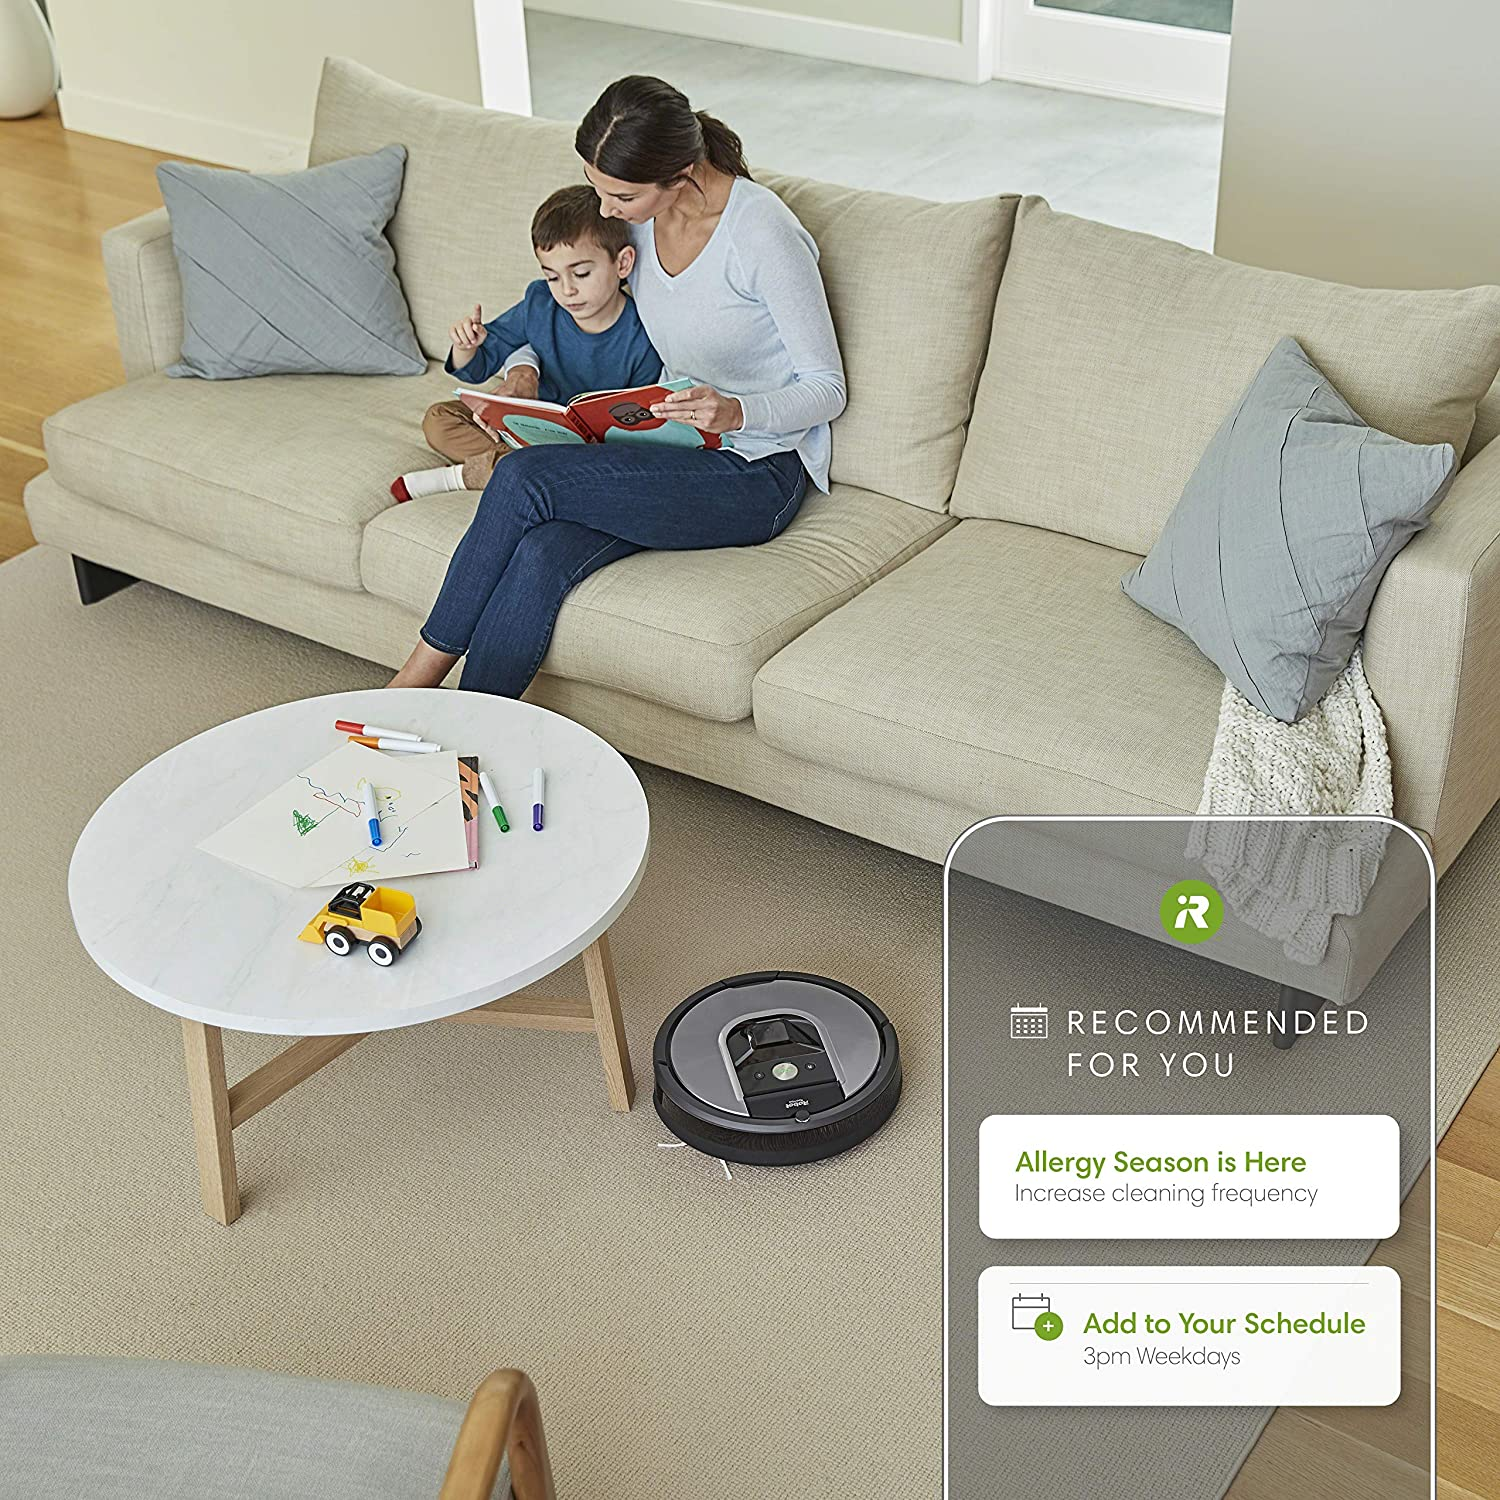 iRobot Roomba 960 Robot Vacuum- Wi-Fi Connected Mapping, Works with Alexa, Ideal for Pet Hair, Carpets, Hard Floors, Black -